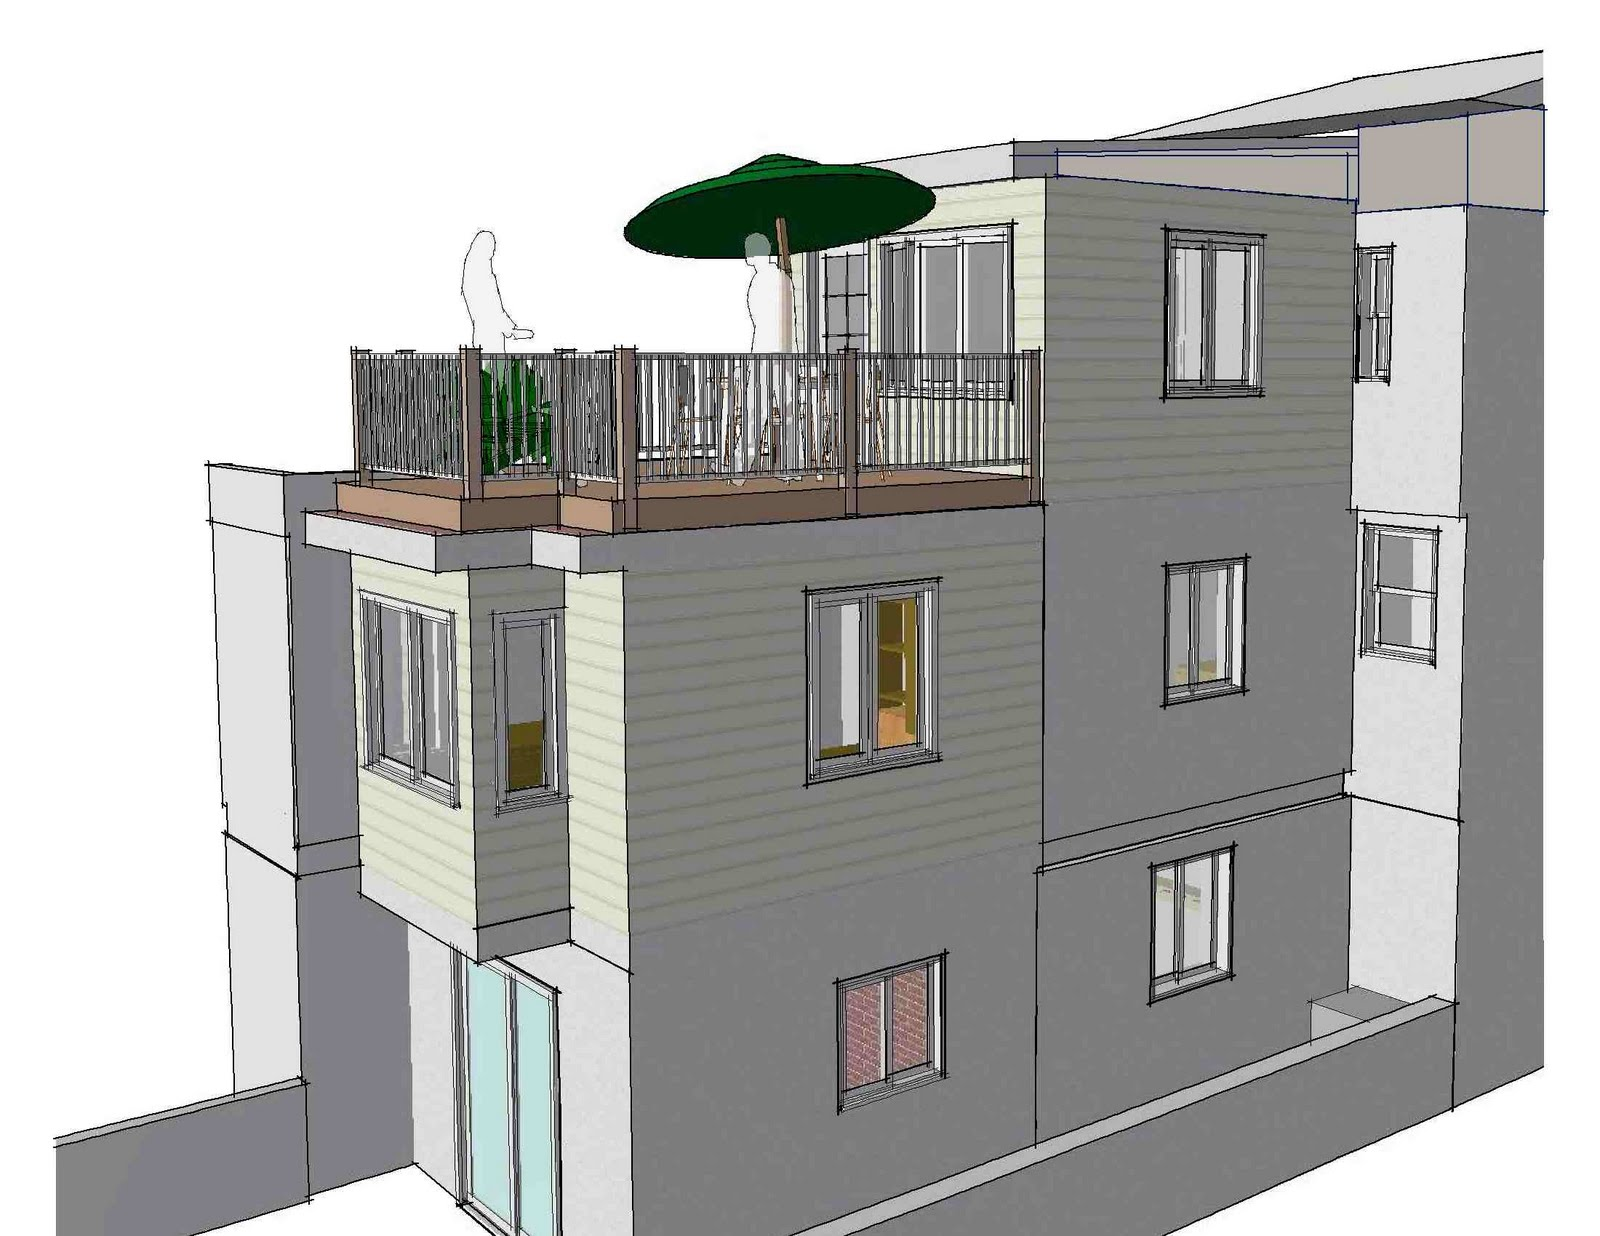 ... Complexity By Using A Reinforced Vinyl Roofing That Is Common On Condo  Decks (Duradek). The Builder (Springfield Construction) Also Proposed  Fiberglass, ...